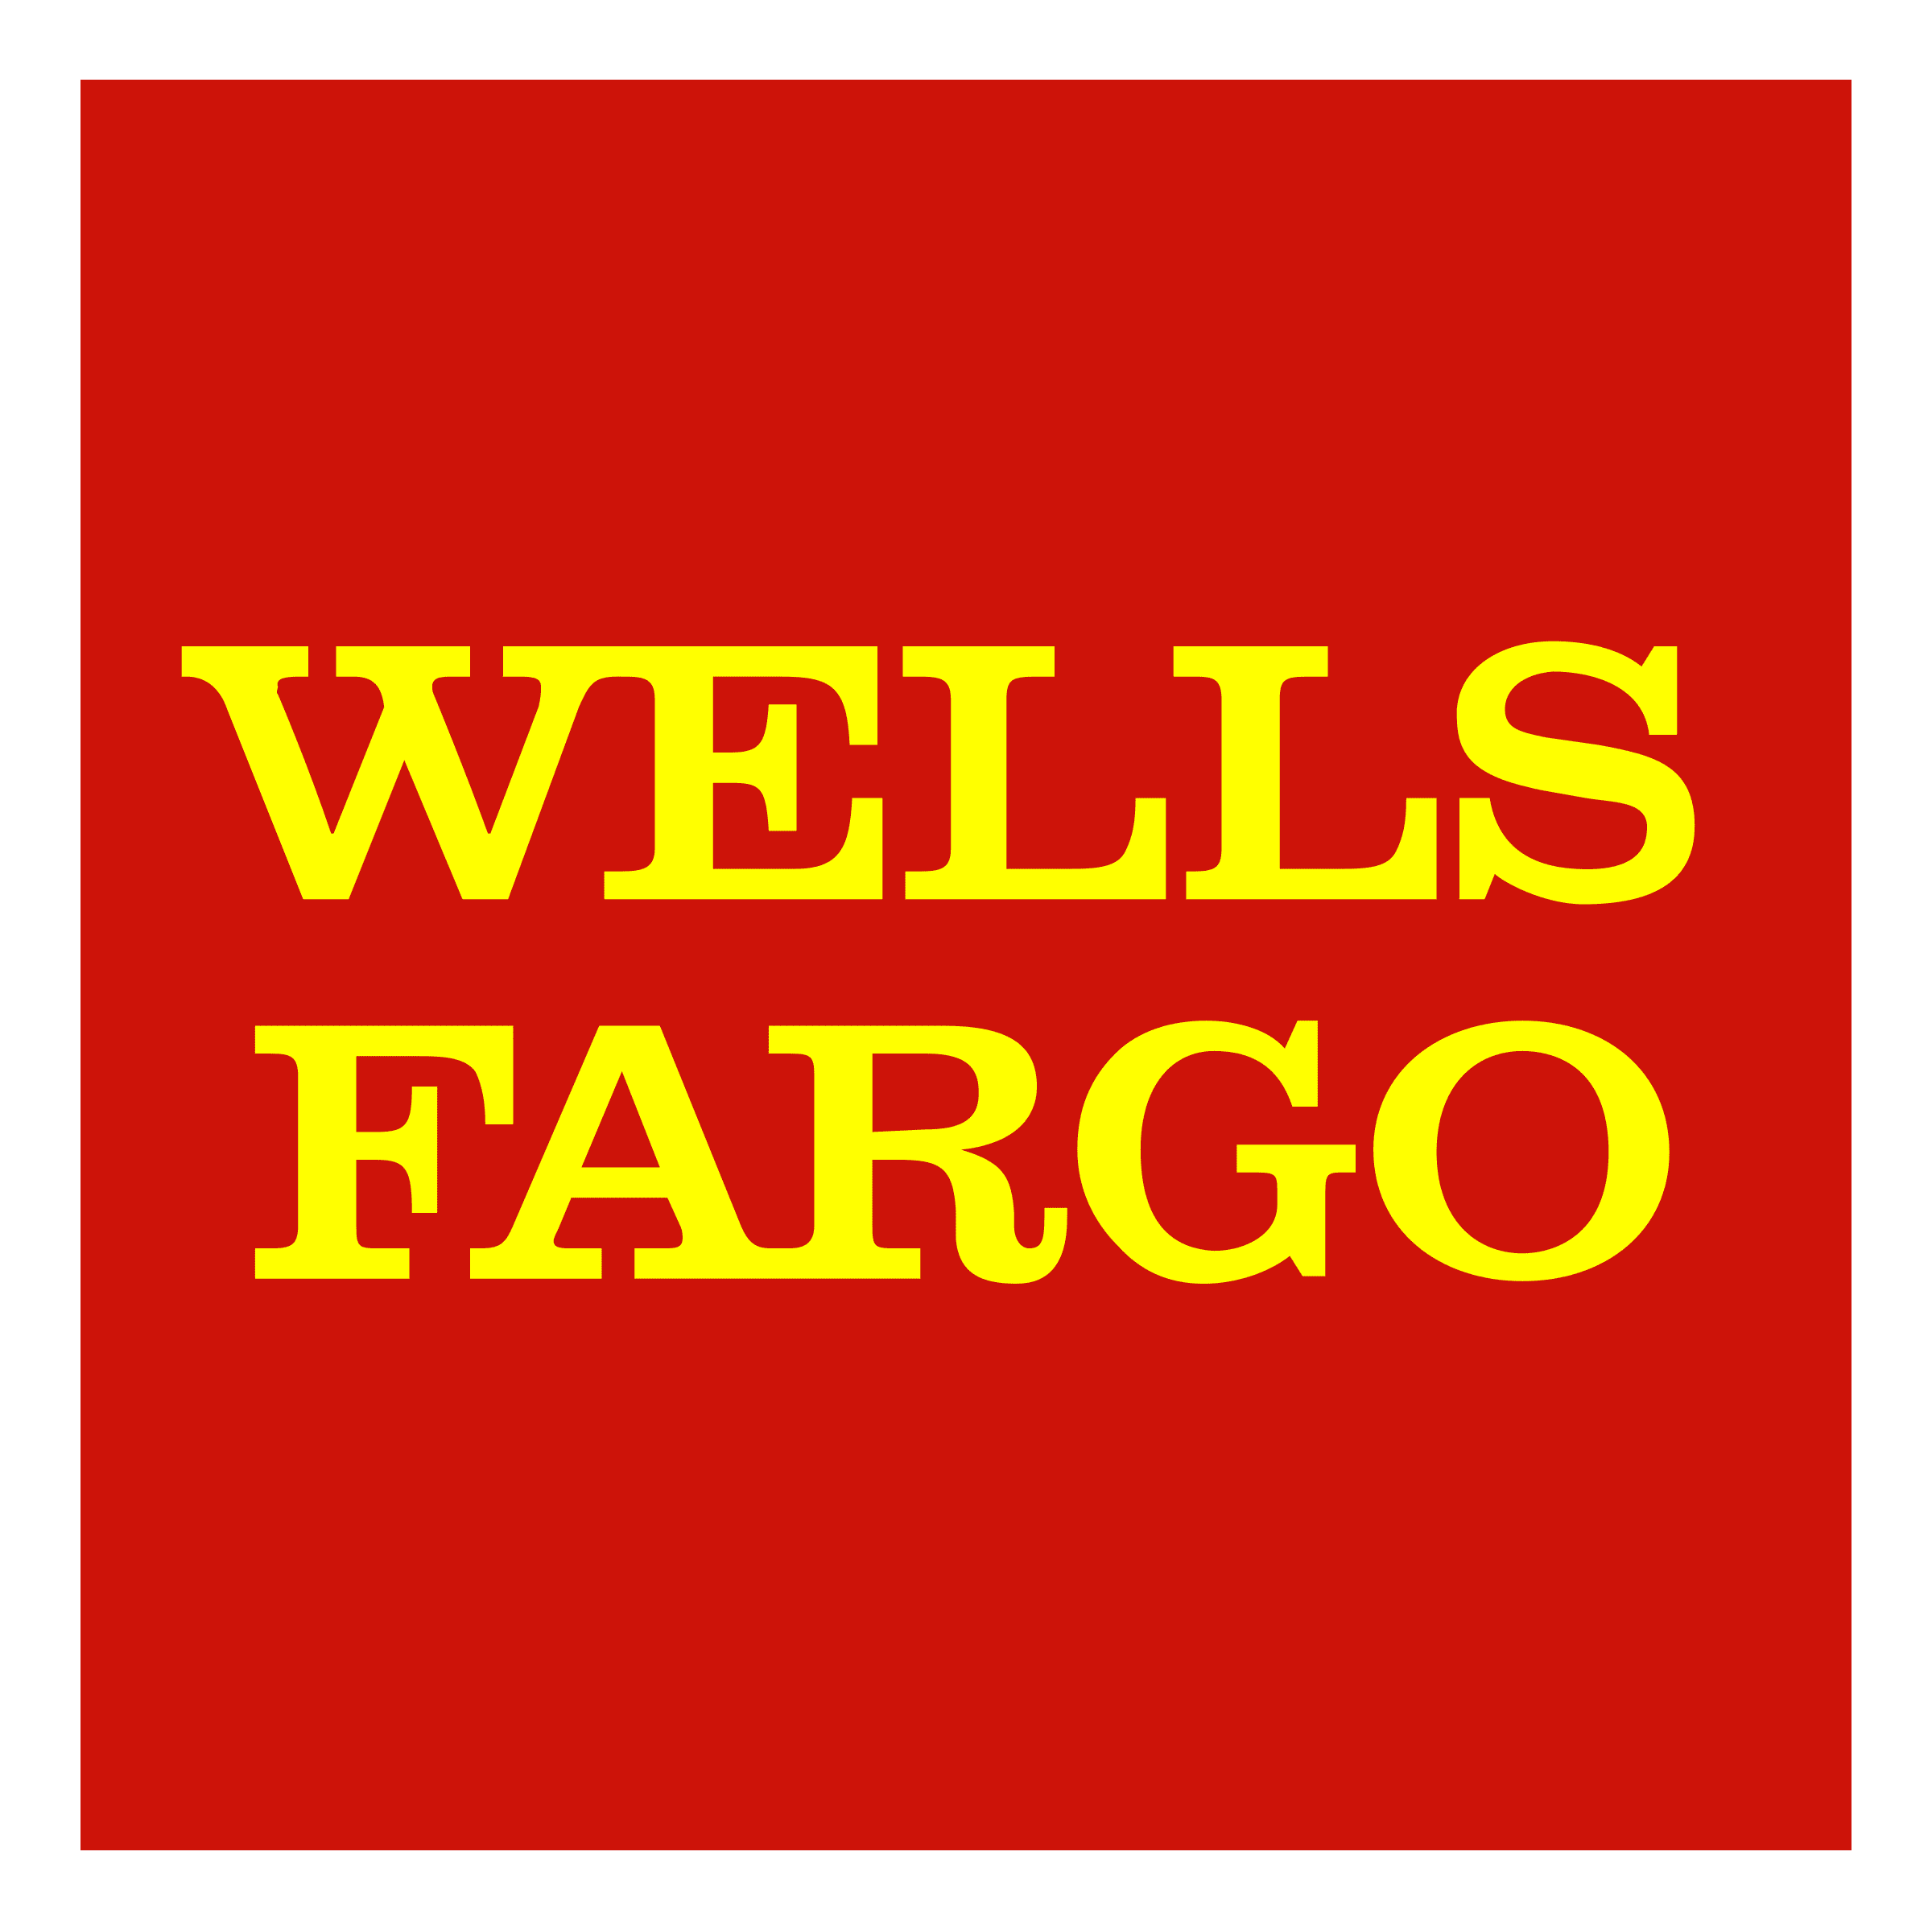 https://skyhookfoundation.org/wp-content/uploads/2019/04/wells-fargo-logo-transparent.png